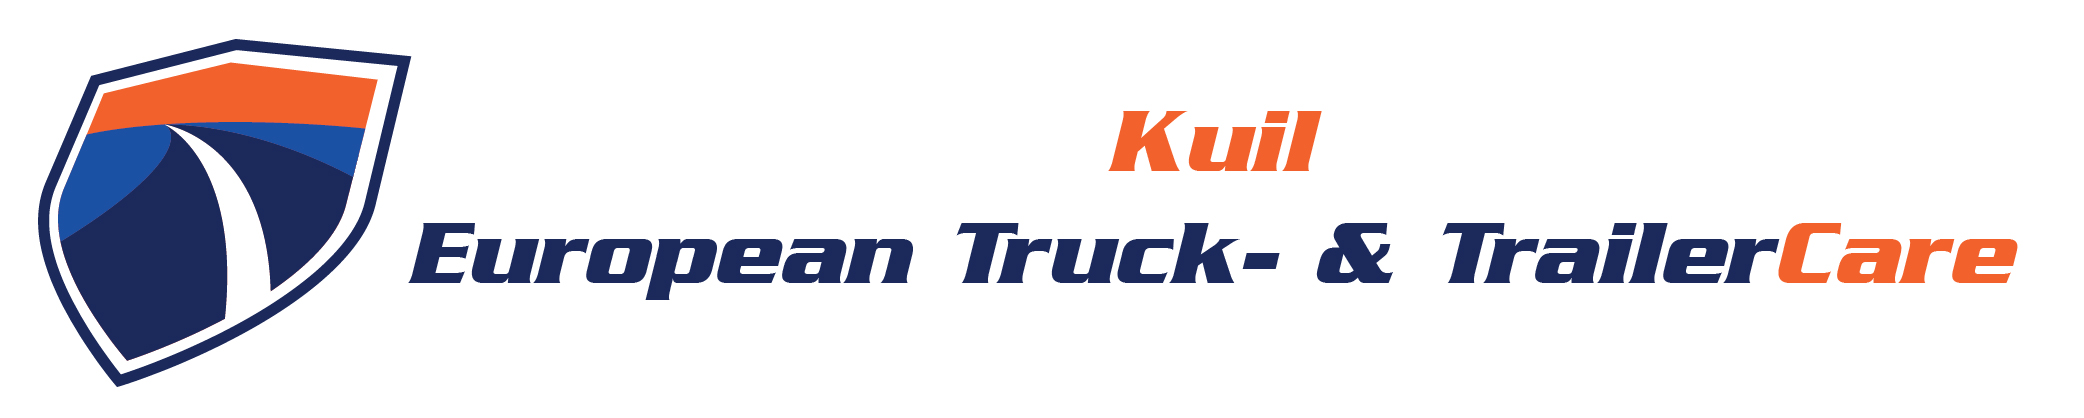 kuil-european-truck-trailer-care